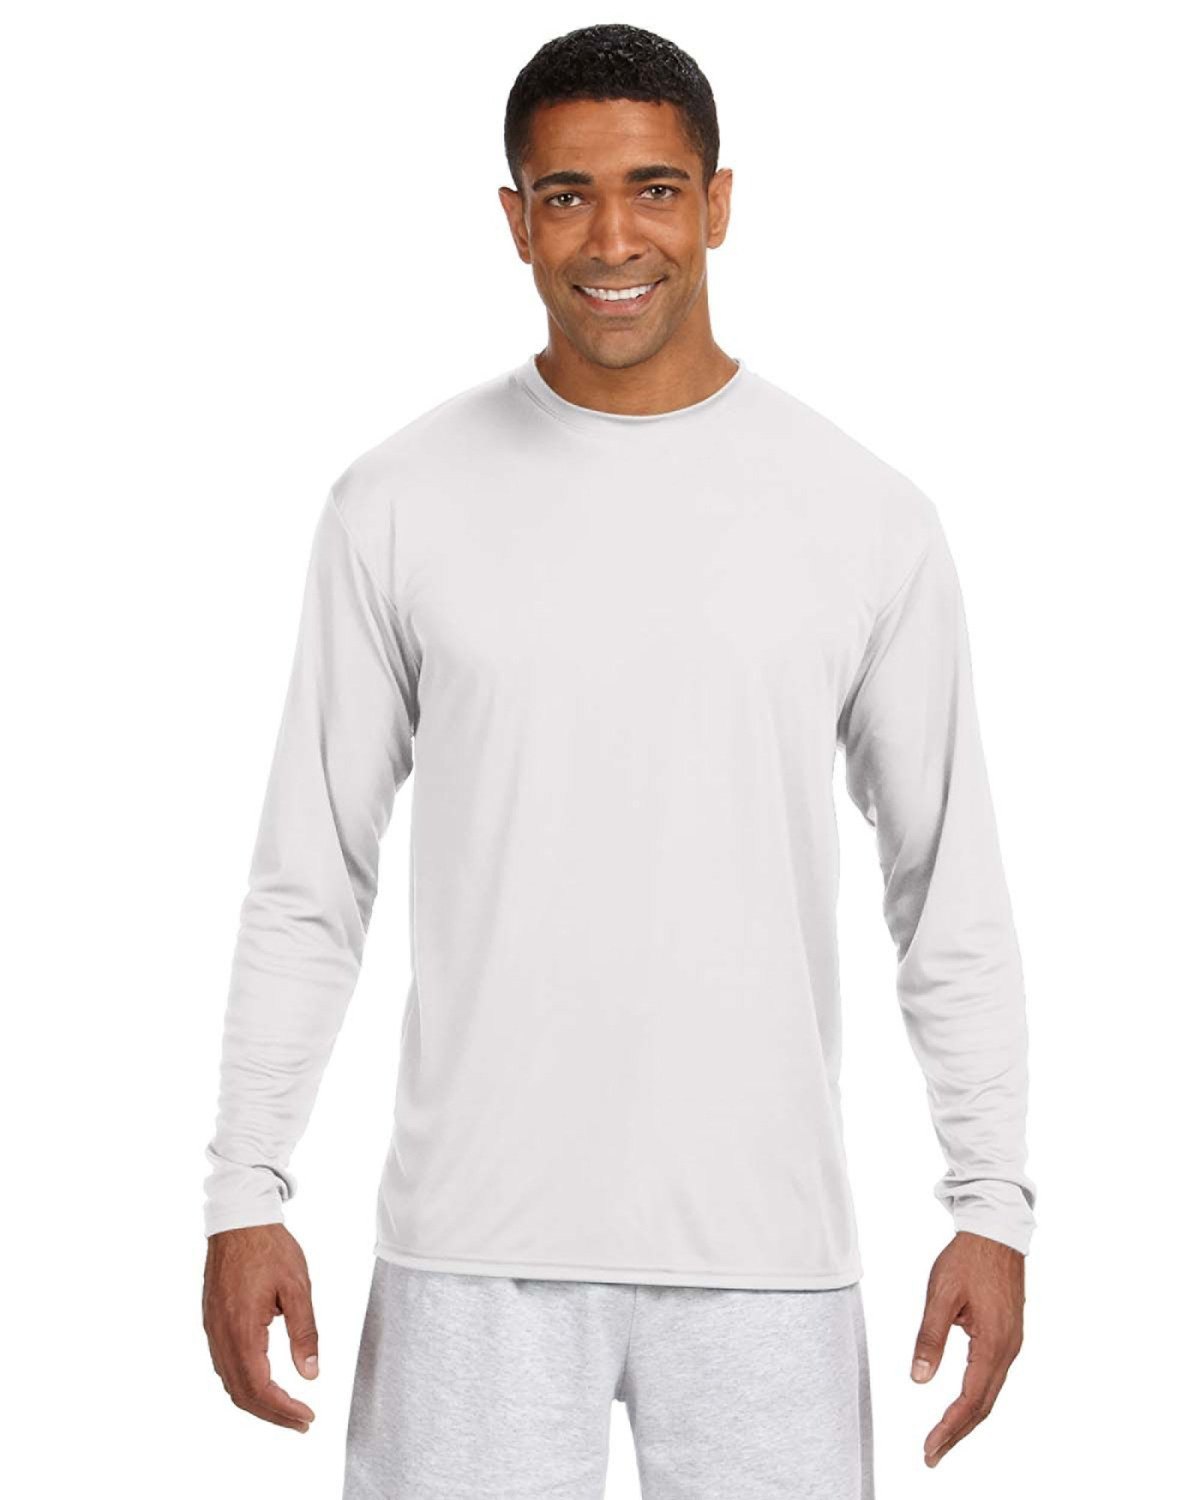 A4 Youth Cooling Performance Crew Long Sleeve